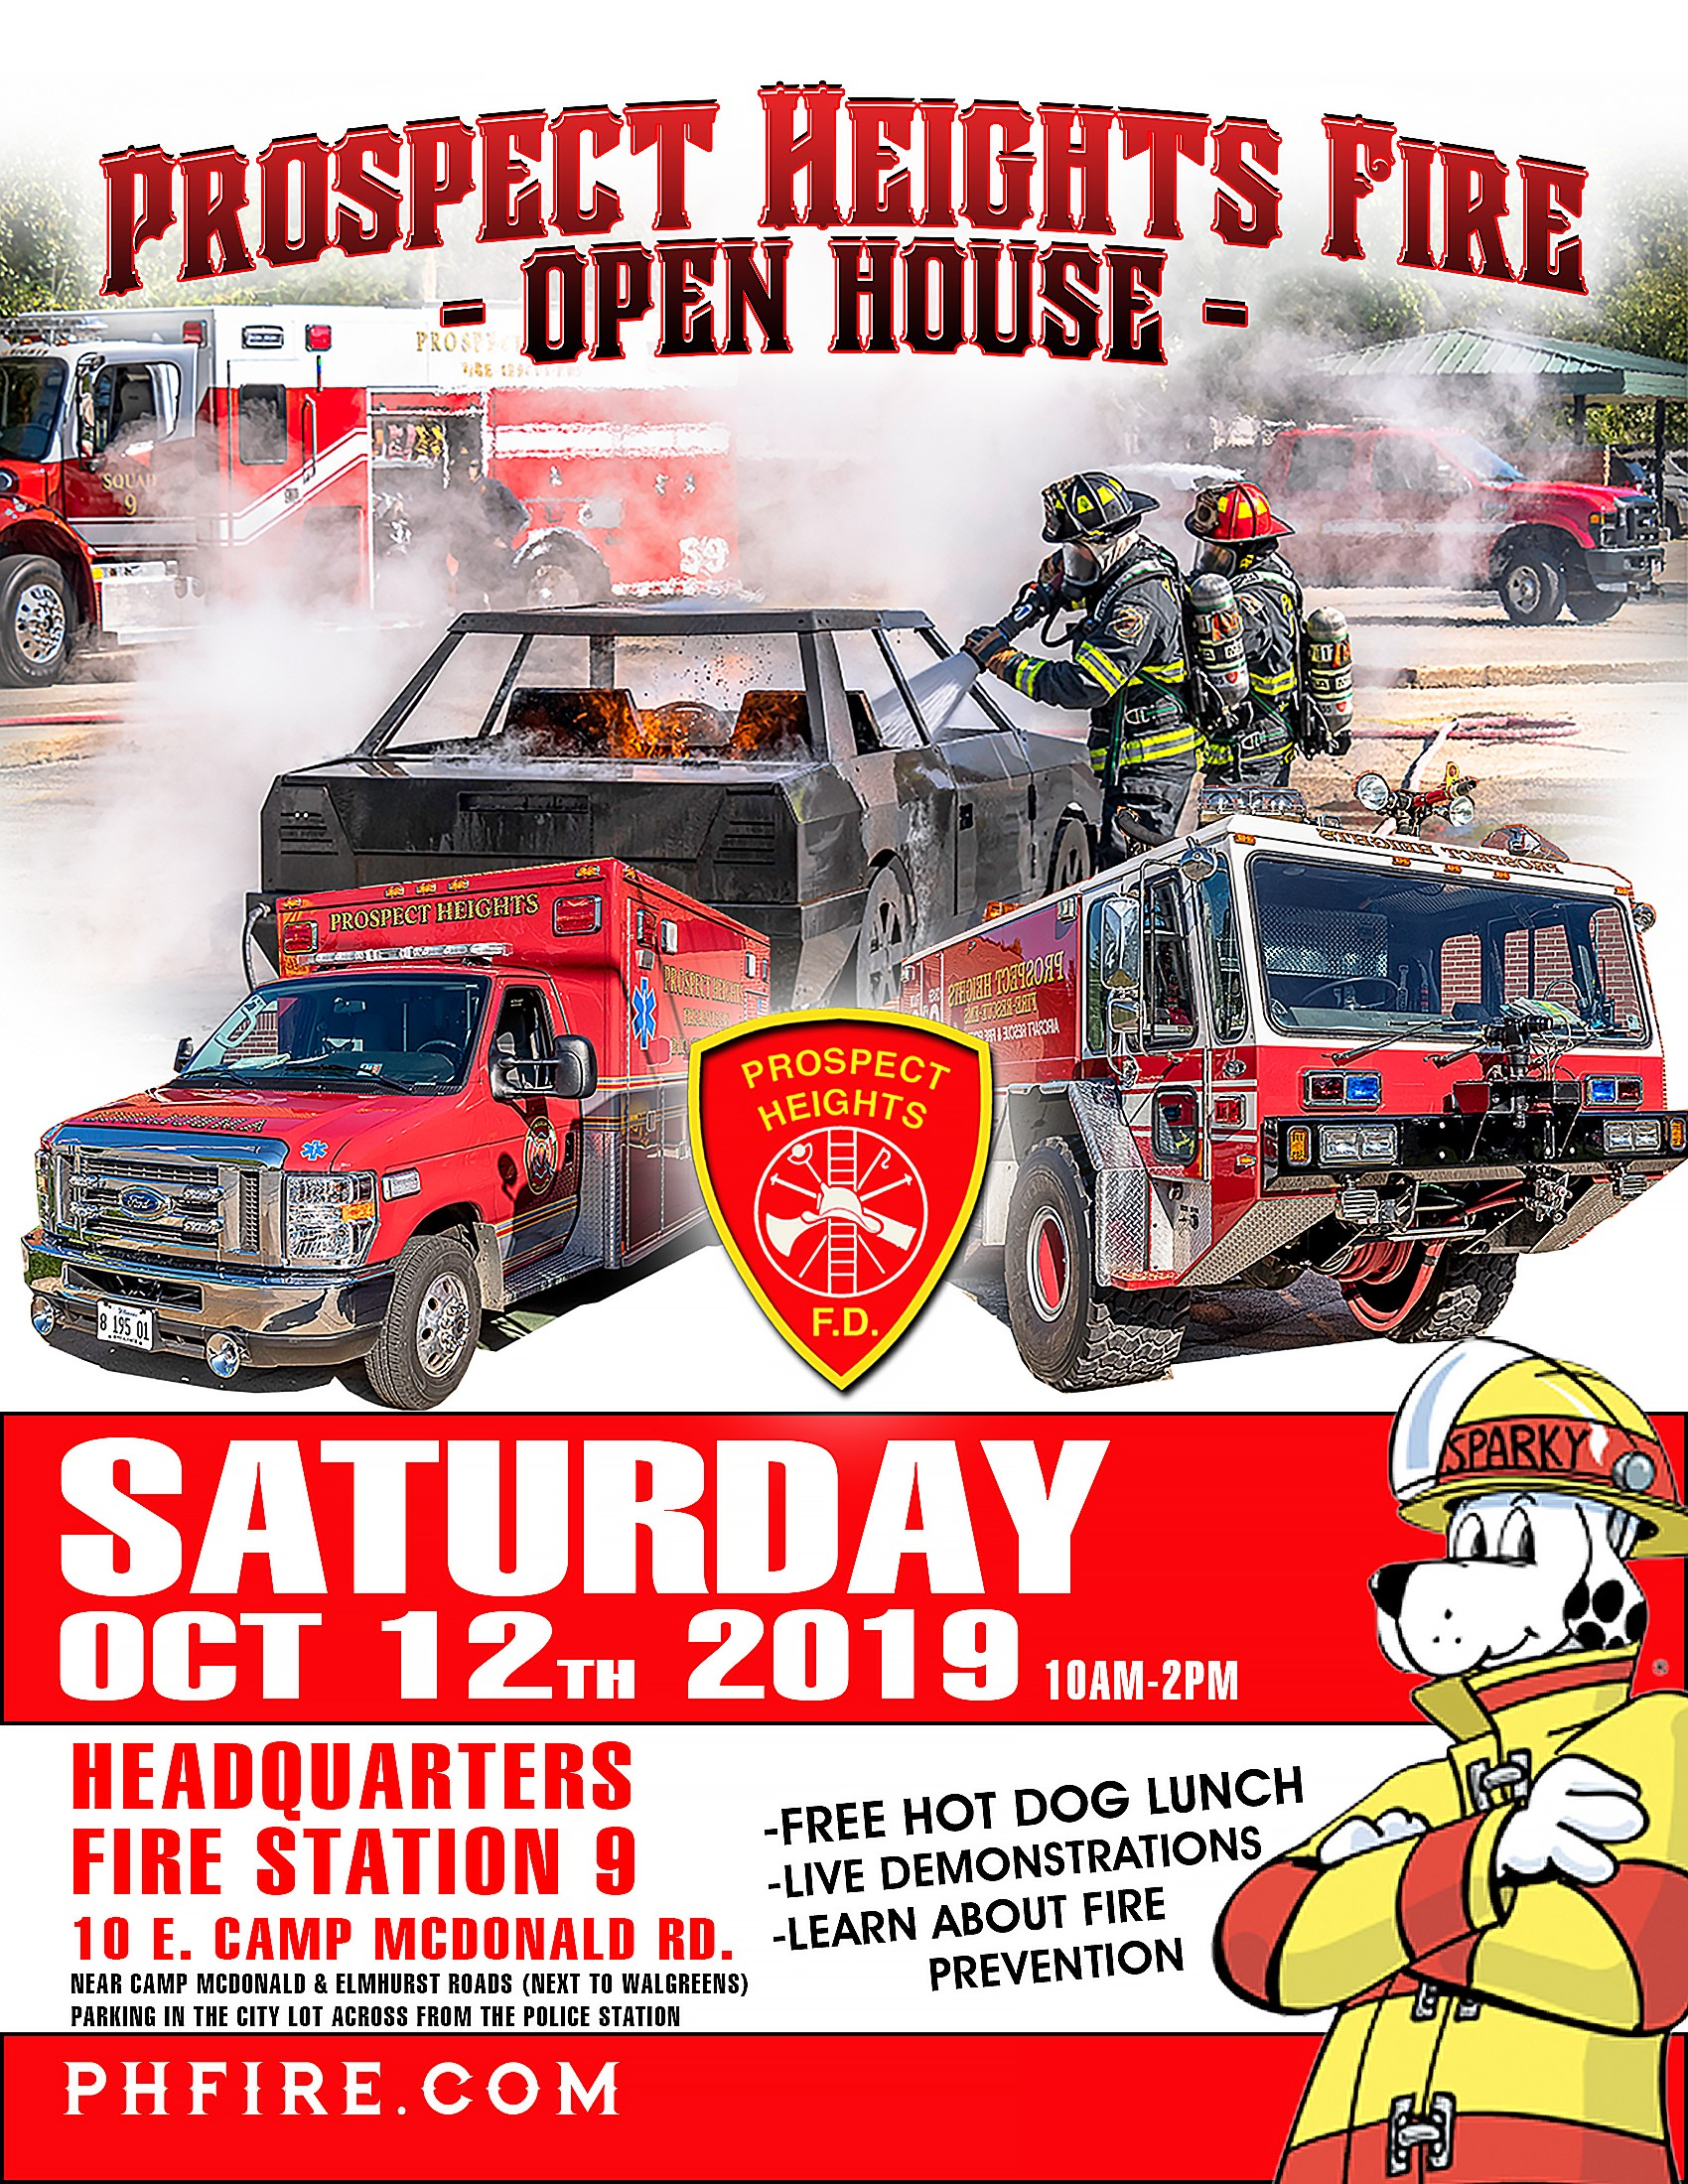 Prospect Heights FPD 2019 Open House